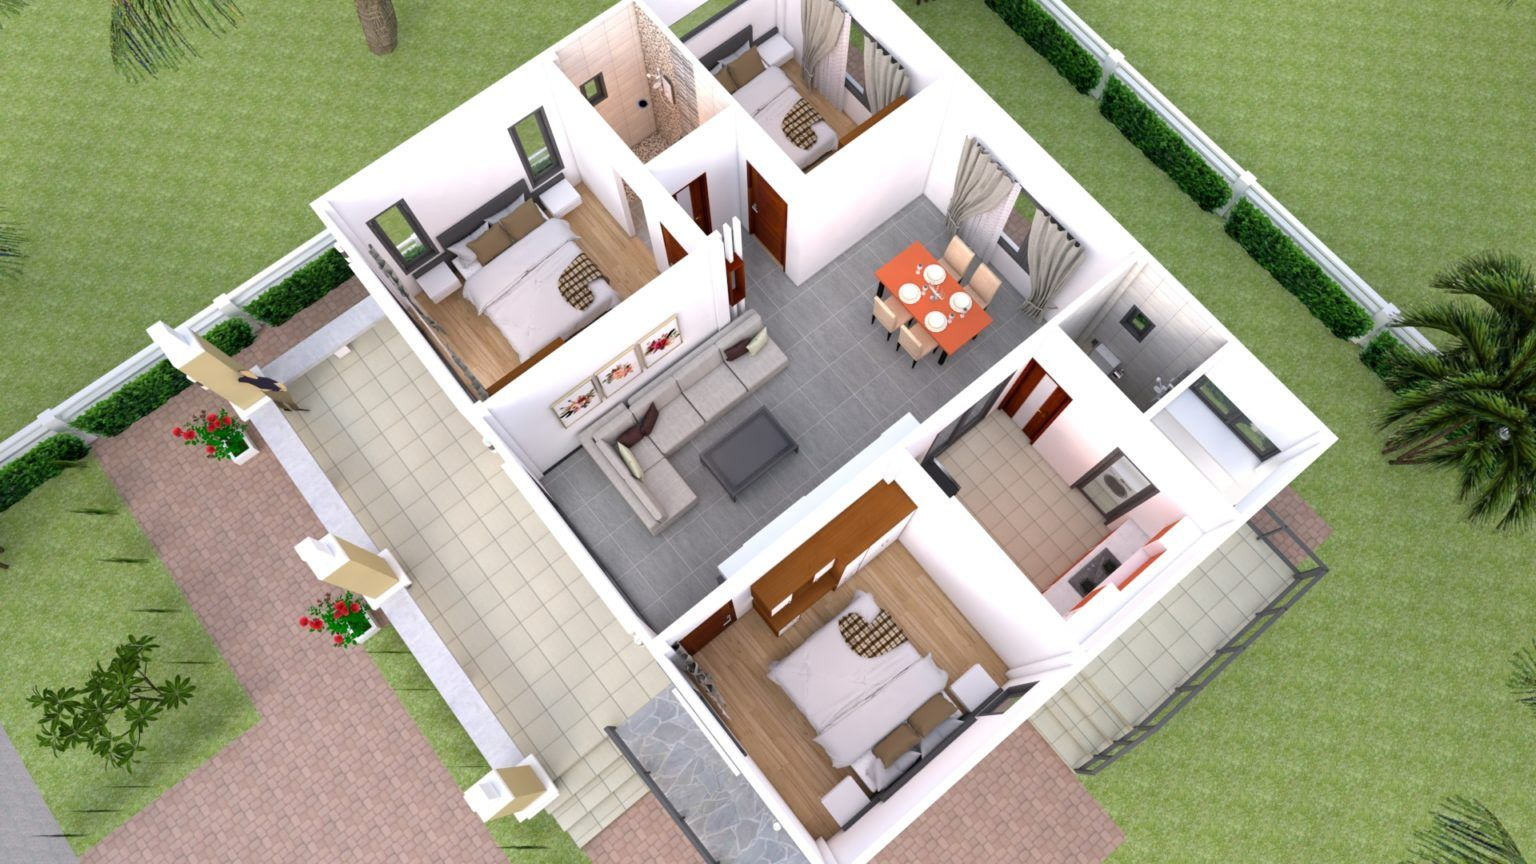 House Design 10x10 With 3 Bedrooms Hip Roof House Plans 3d House Plans Sims House Plans Two Bedroom House Design